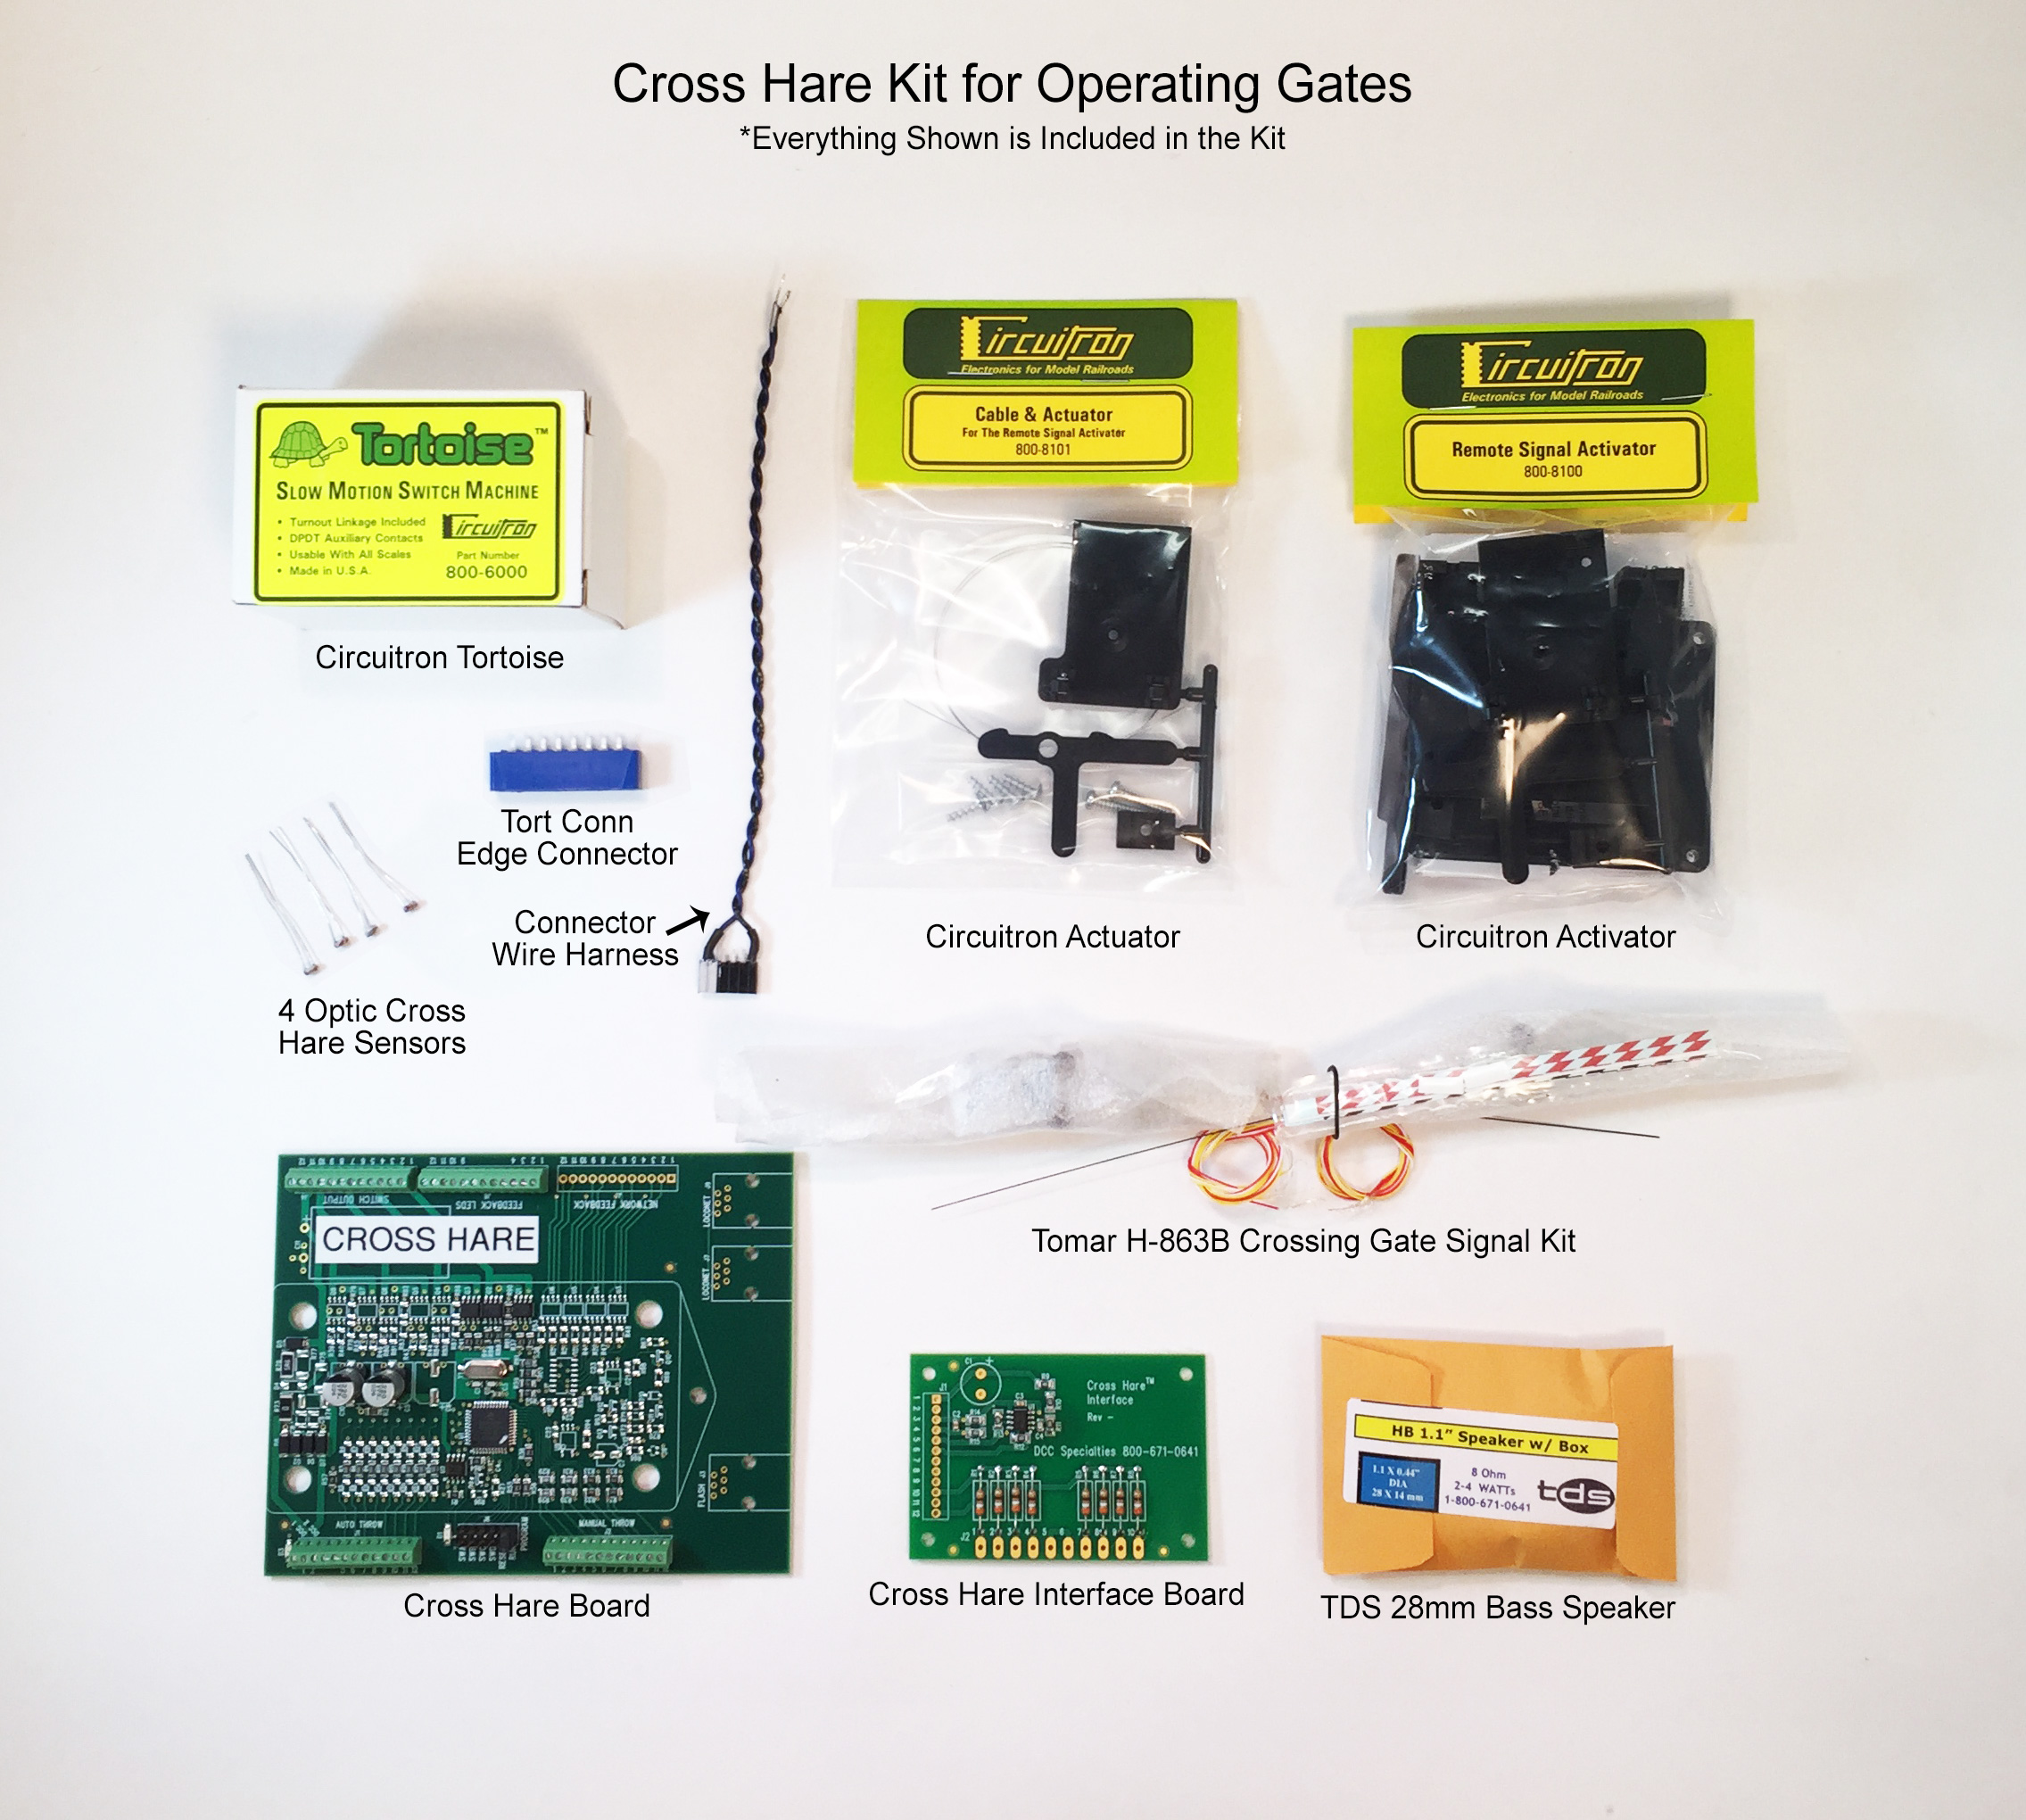 cross-hare-crossing-gates-contents